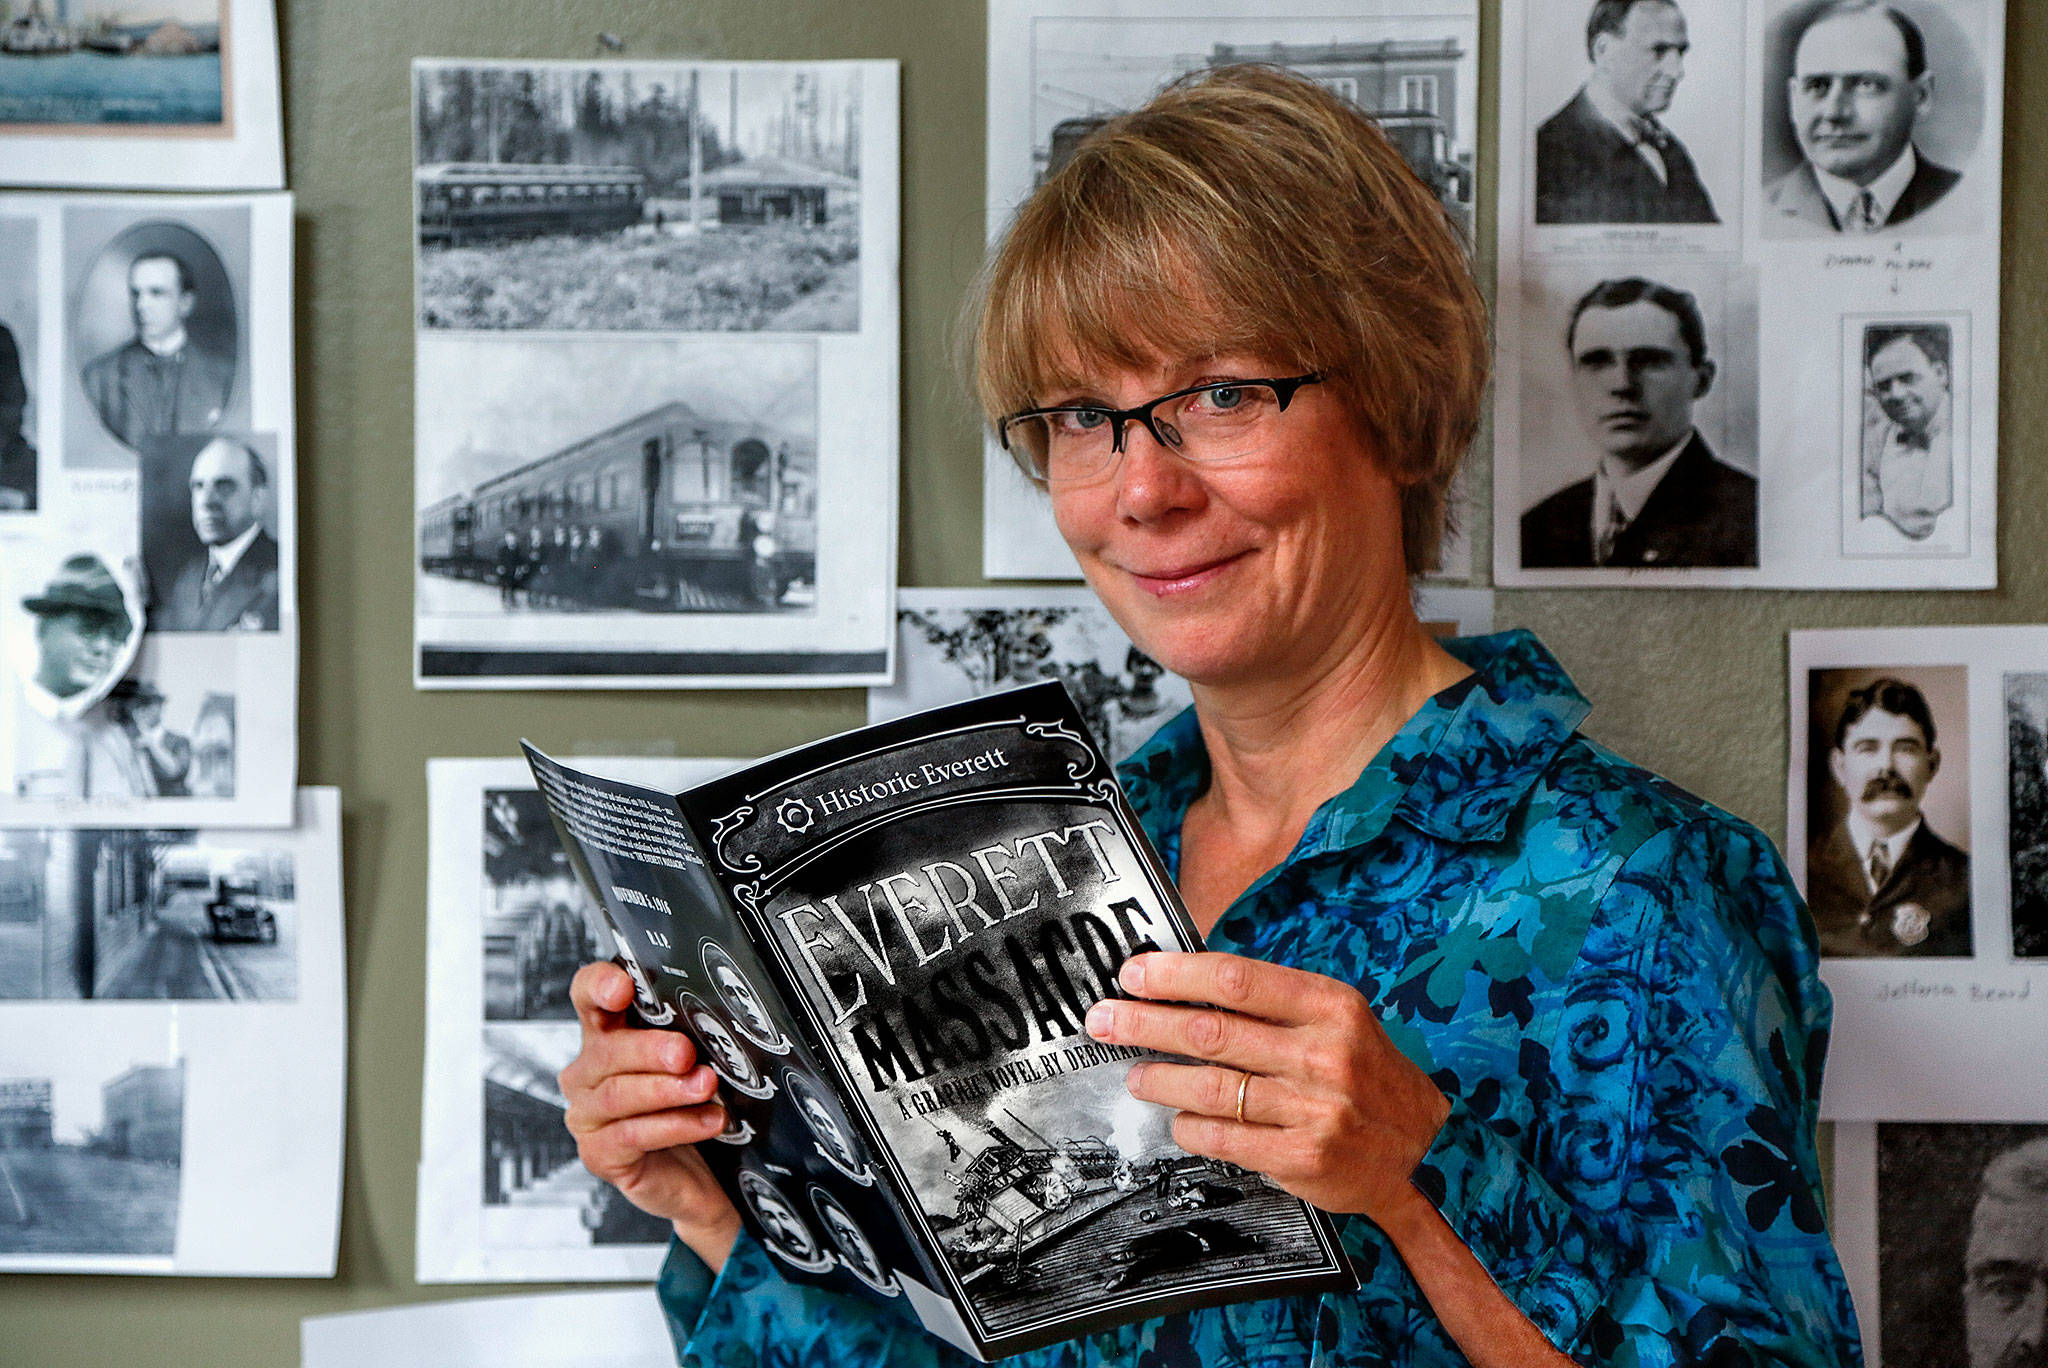 Inside Deb Fox's finished graphic novel, lying atop a storyboard-sketchbook in the artist's home studio, shadowy charcoal characters come alive with words, sprouting circles of dialogue from a 100-year-old conflict. (Dan Bates / The Herald)